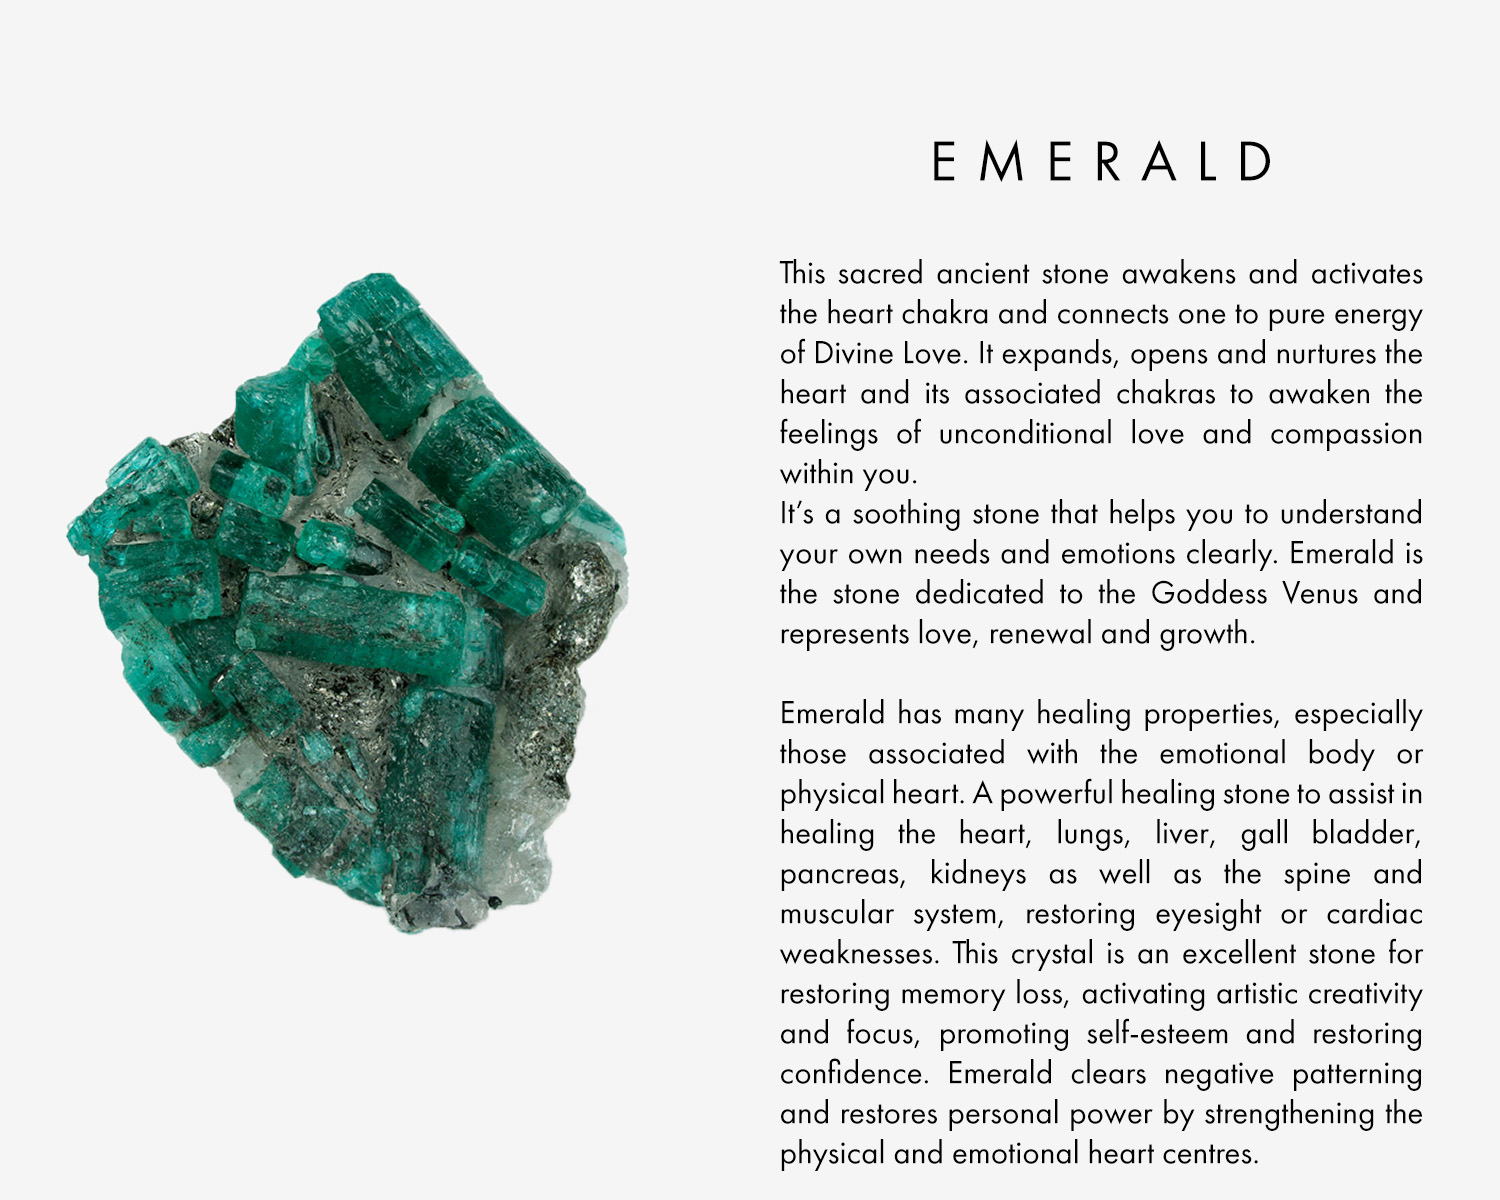 This sacred ancient stone awakens and activates the heart chakra and connects one to pure energy of Divine Love. It expands, opens and nurtures the heart and its associated chakras to awaken the feelings of unconditional love and compassion within you. It's a soothing stone that helps you to understand your own needs and emotions clearly. Emerald is the stone dedicated to the Goddess Venus and represents love, renewal and growth. Emerald has many healing properties, especially those associated with the emotional body or physical heart. A powerful healing stone to assist in healing the heart, lungs, liver, gall bladder, pancreas, kidneys as well as the spine and muscular system, restoring eyesight or cardiac weaknesses. This crystal is an excellent stone for restoring memory loss, activating artistic creativity and focus, promoting self-esteem and restoring confidence. Emerald clears negative patterning and restores personal power by strengthening the physical and emotional heart centres.